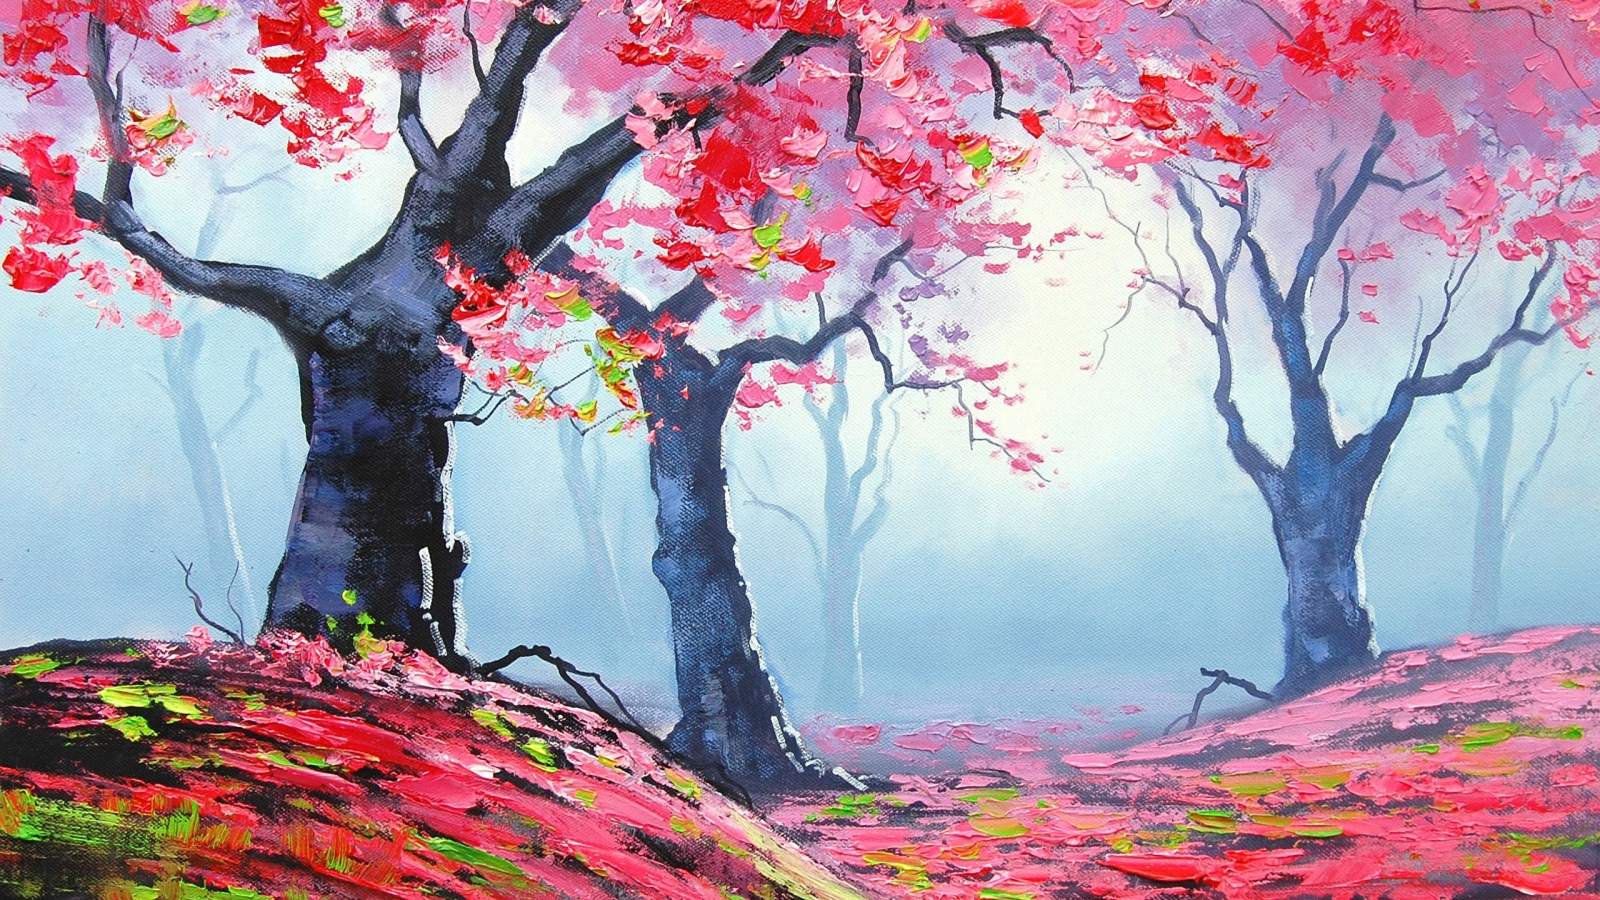 Autumn Red Forest Painting for 1600 x 900 HDTV resolution